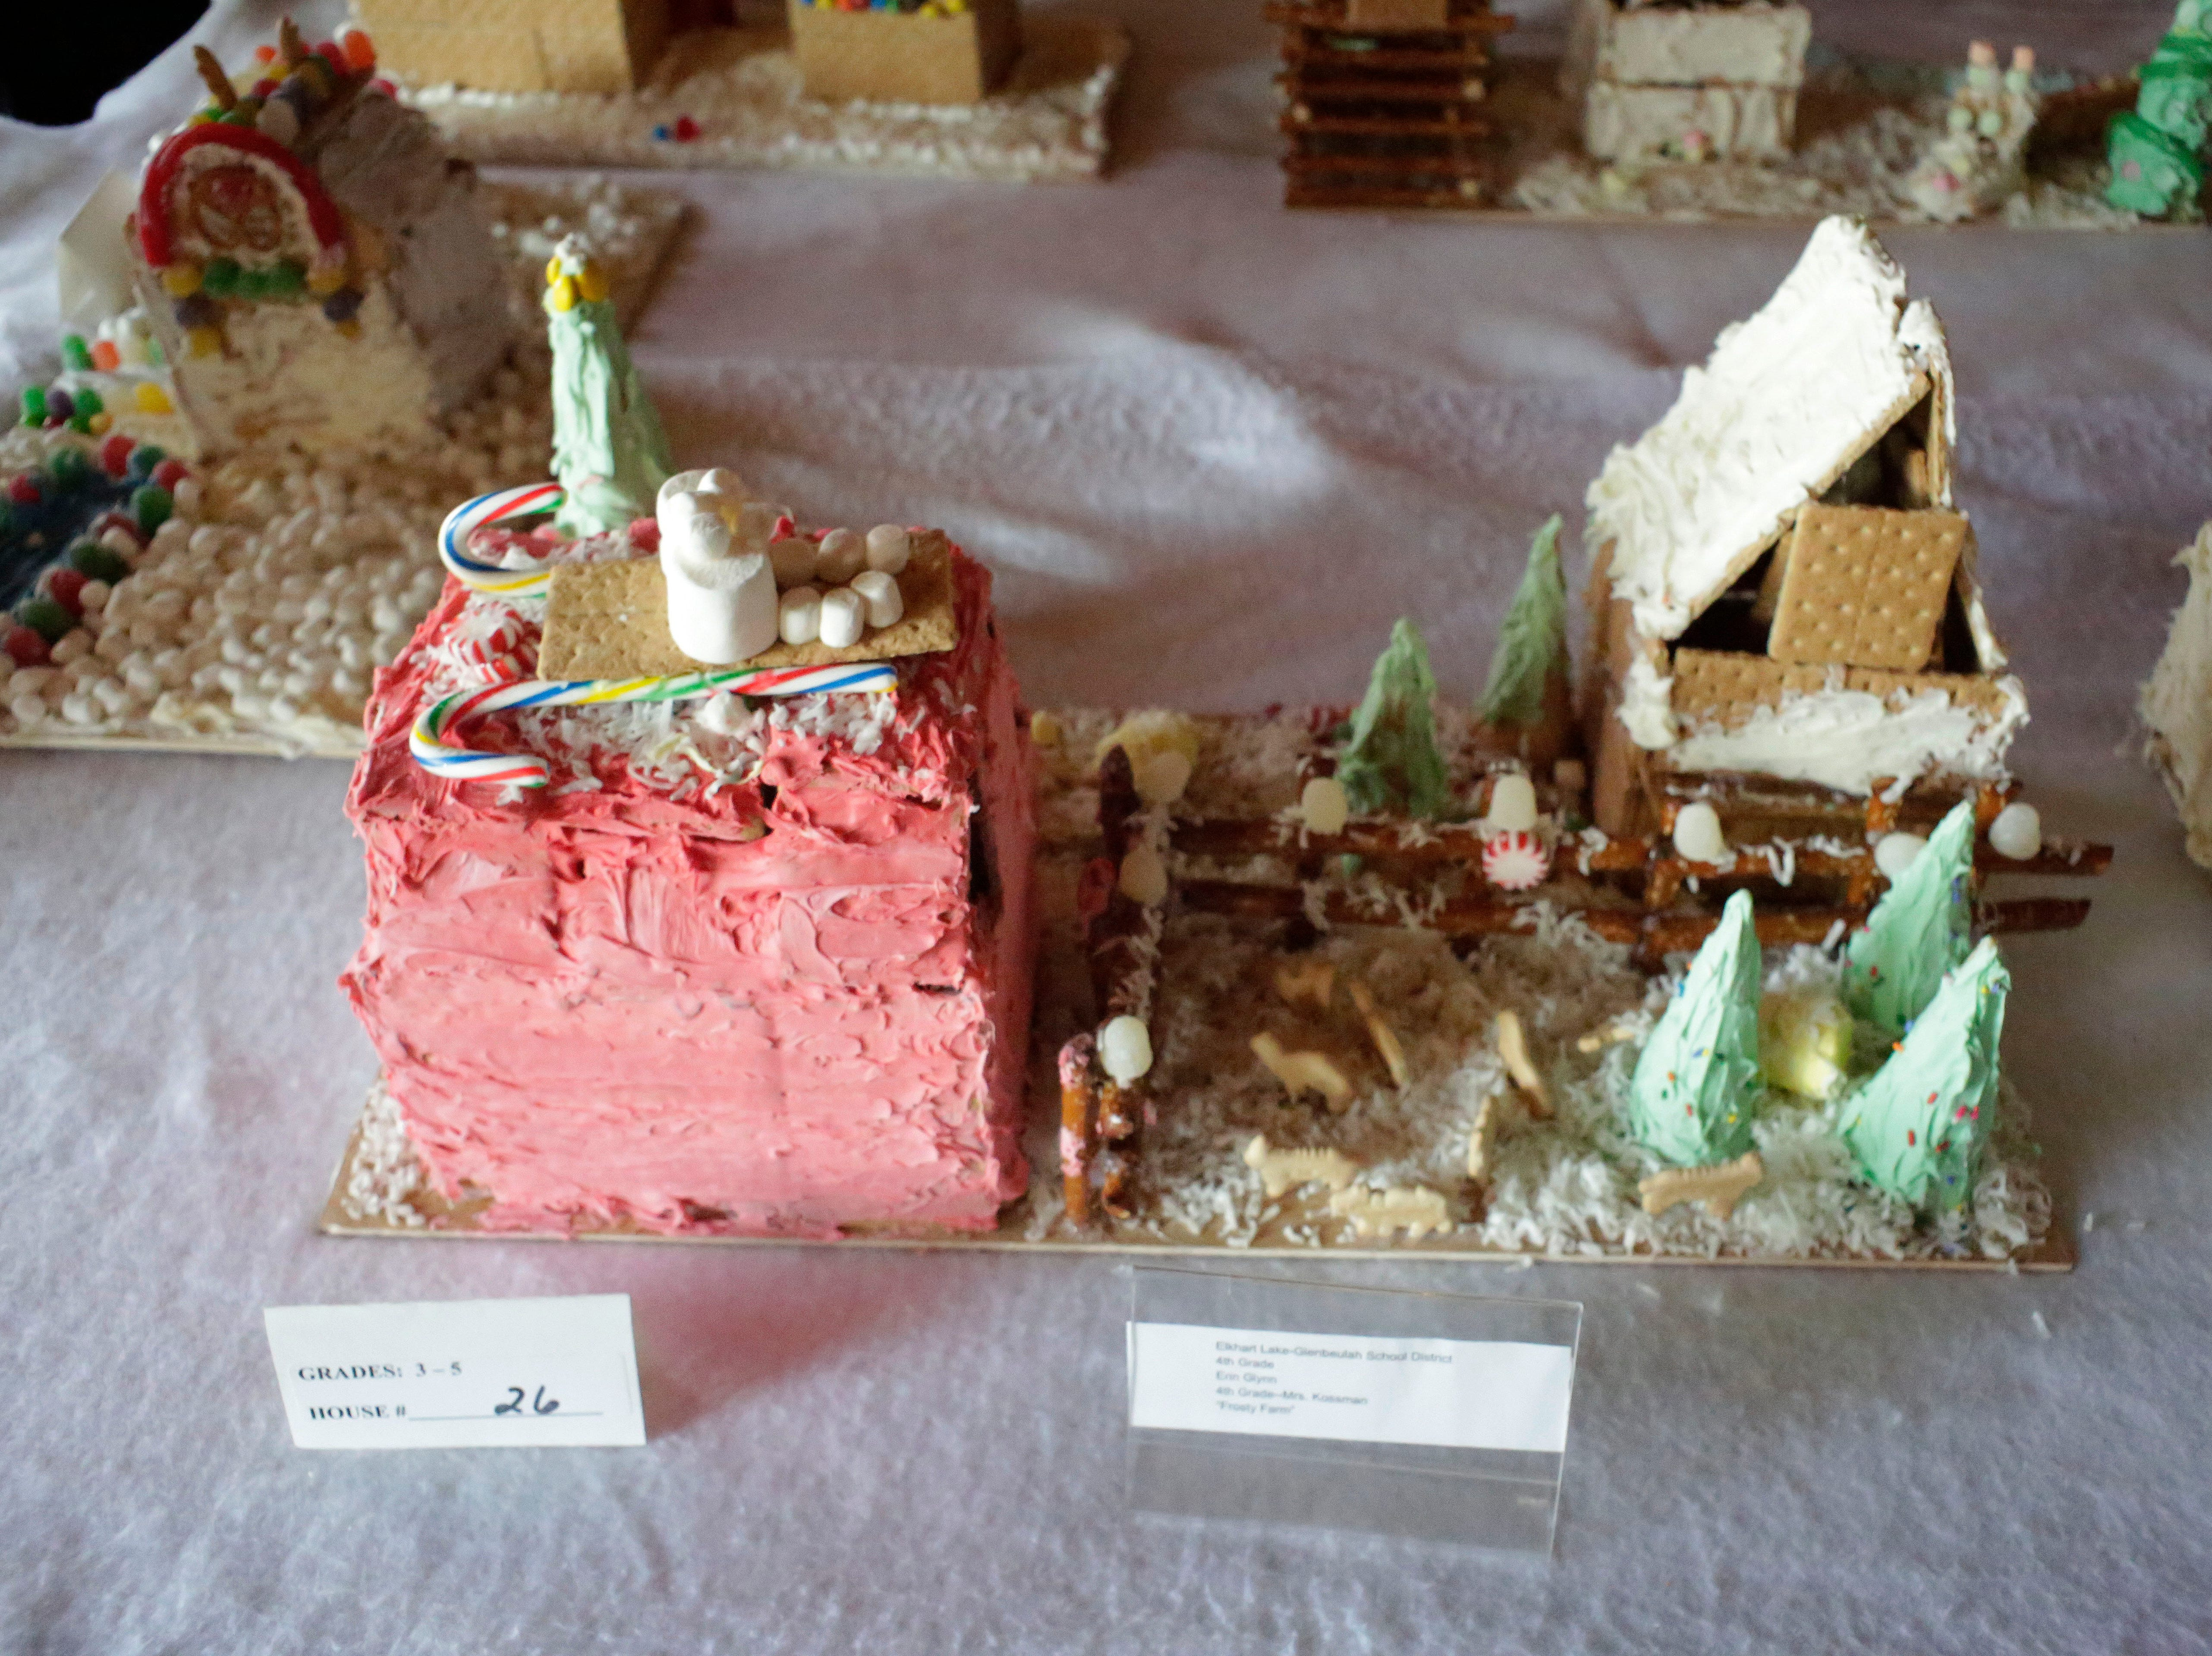 A Frosty Farm at the annual Waelderhaus Gingerbread Festival, Saturday, December 8, 2018, in Kohler, Wis.